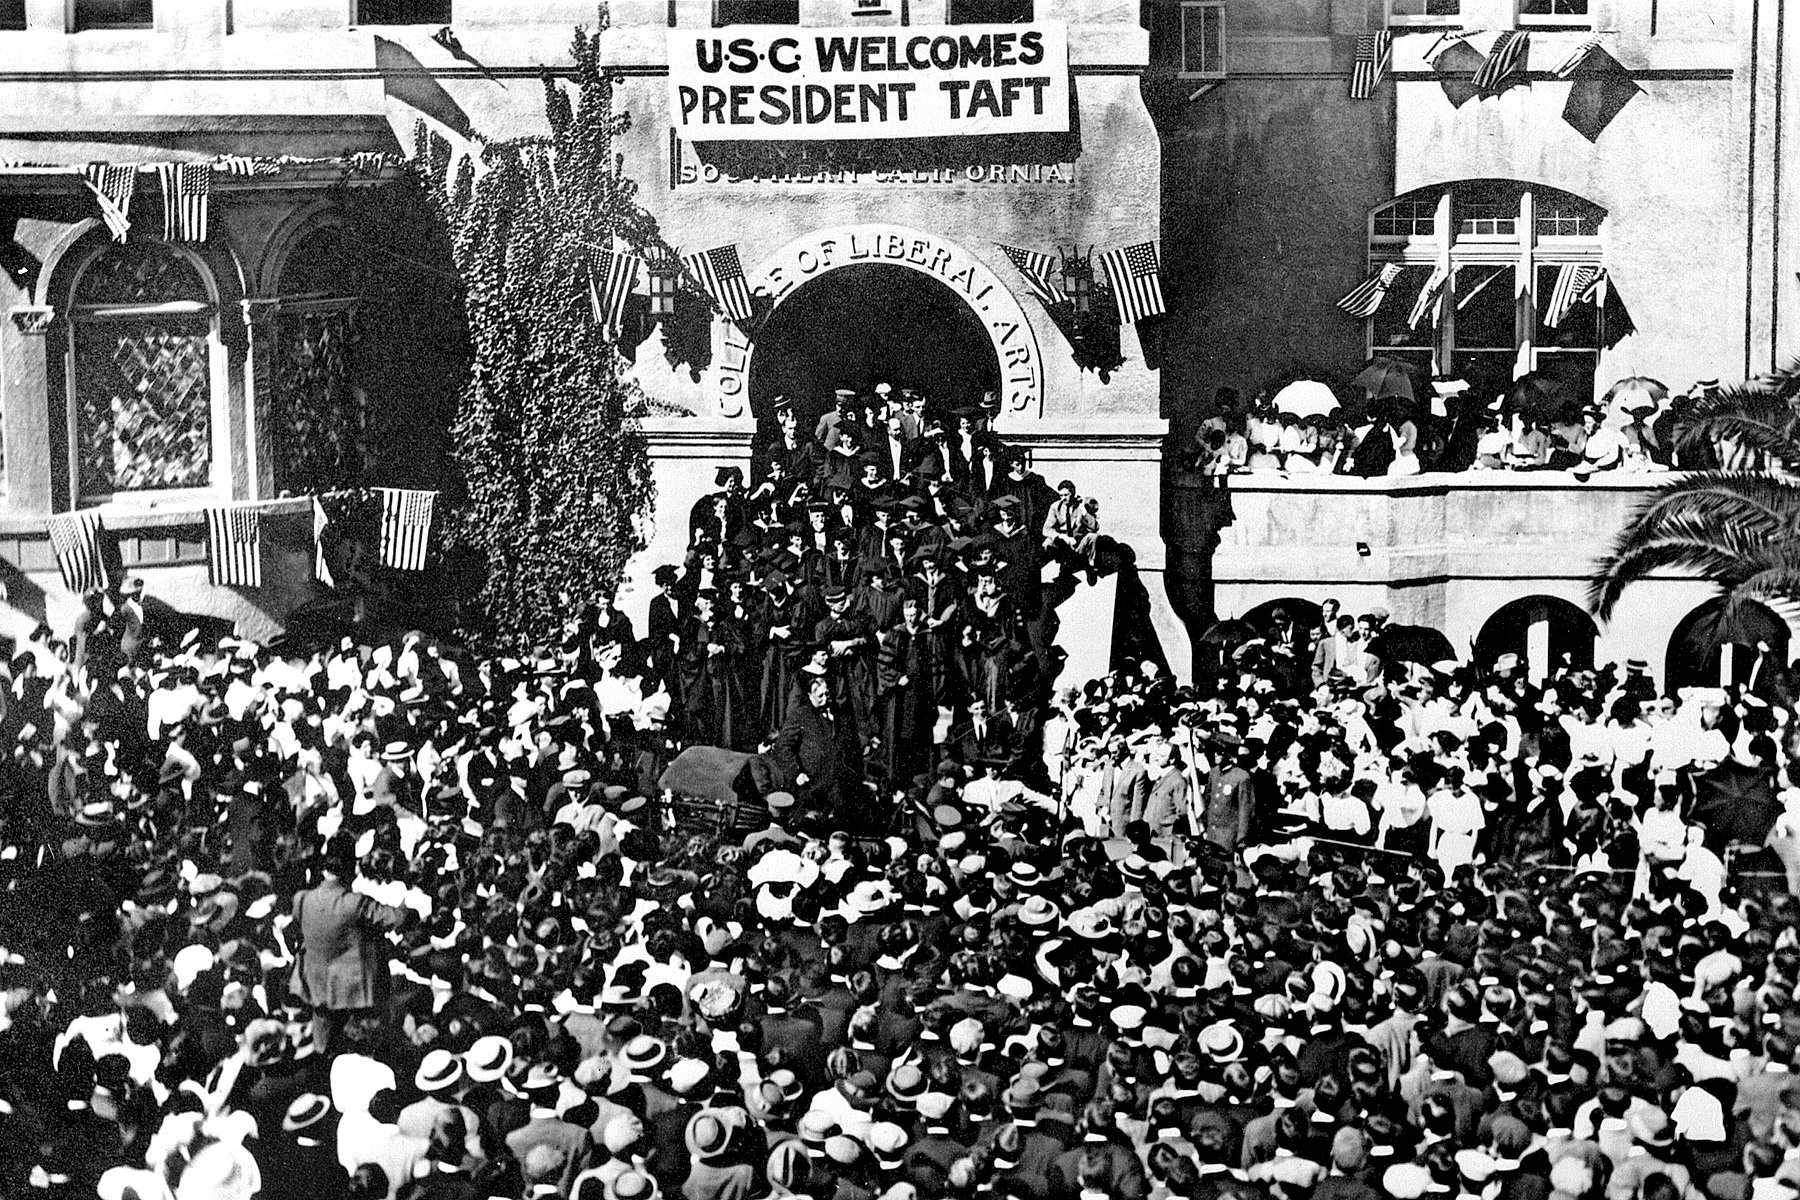 1911: President William Howard Taft visits the USC campus.